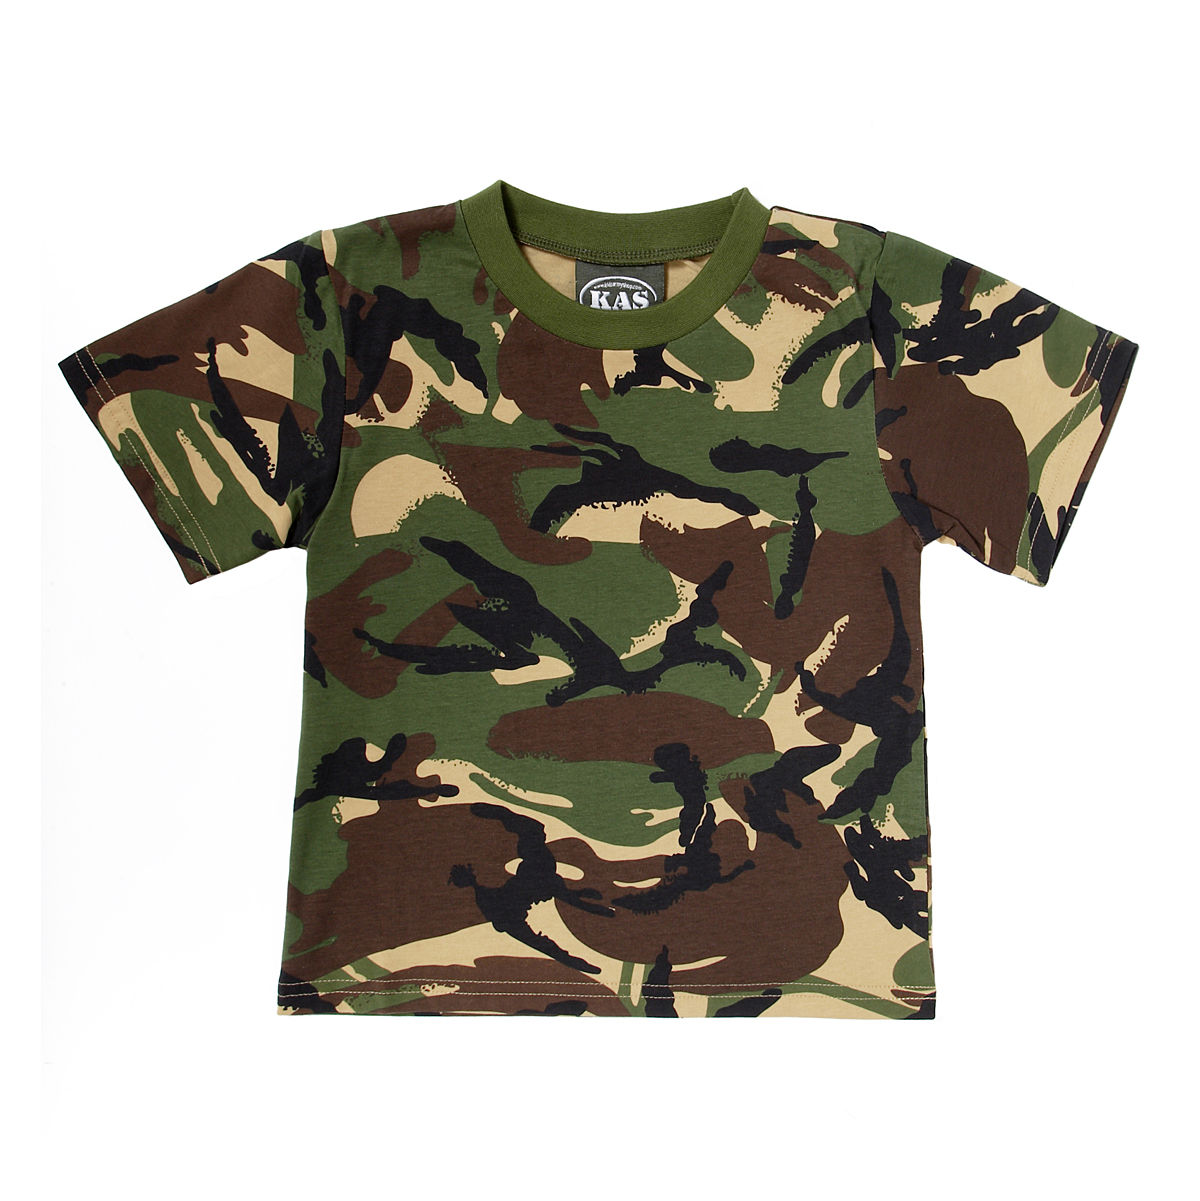 We stock a Great Selection of Childrens Camo gear including Camo Combat Trousers, Childrens Combat Jackets, Children's Cam Hats, camo Army Suits, We also have Camo Face Paint, Kids Assult Vests, kids Combat clothing, Kids Army Helmets, camo T-Shirts, and even camo wellies, All in stock and ready to post.